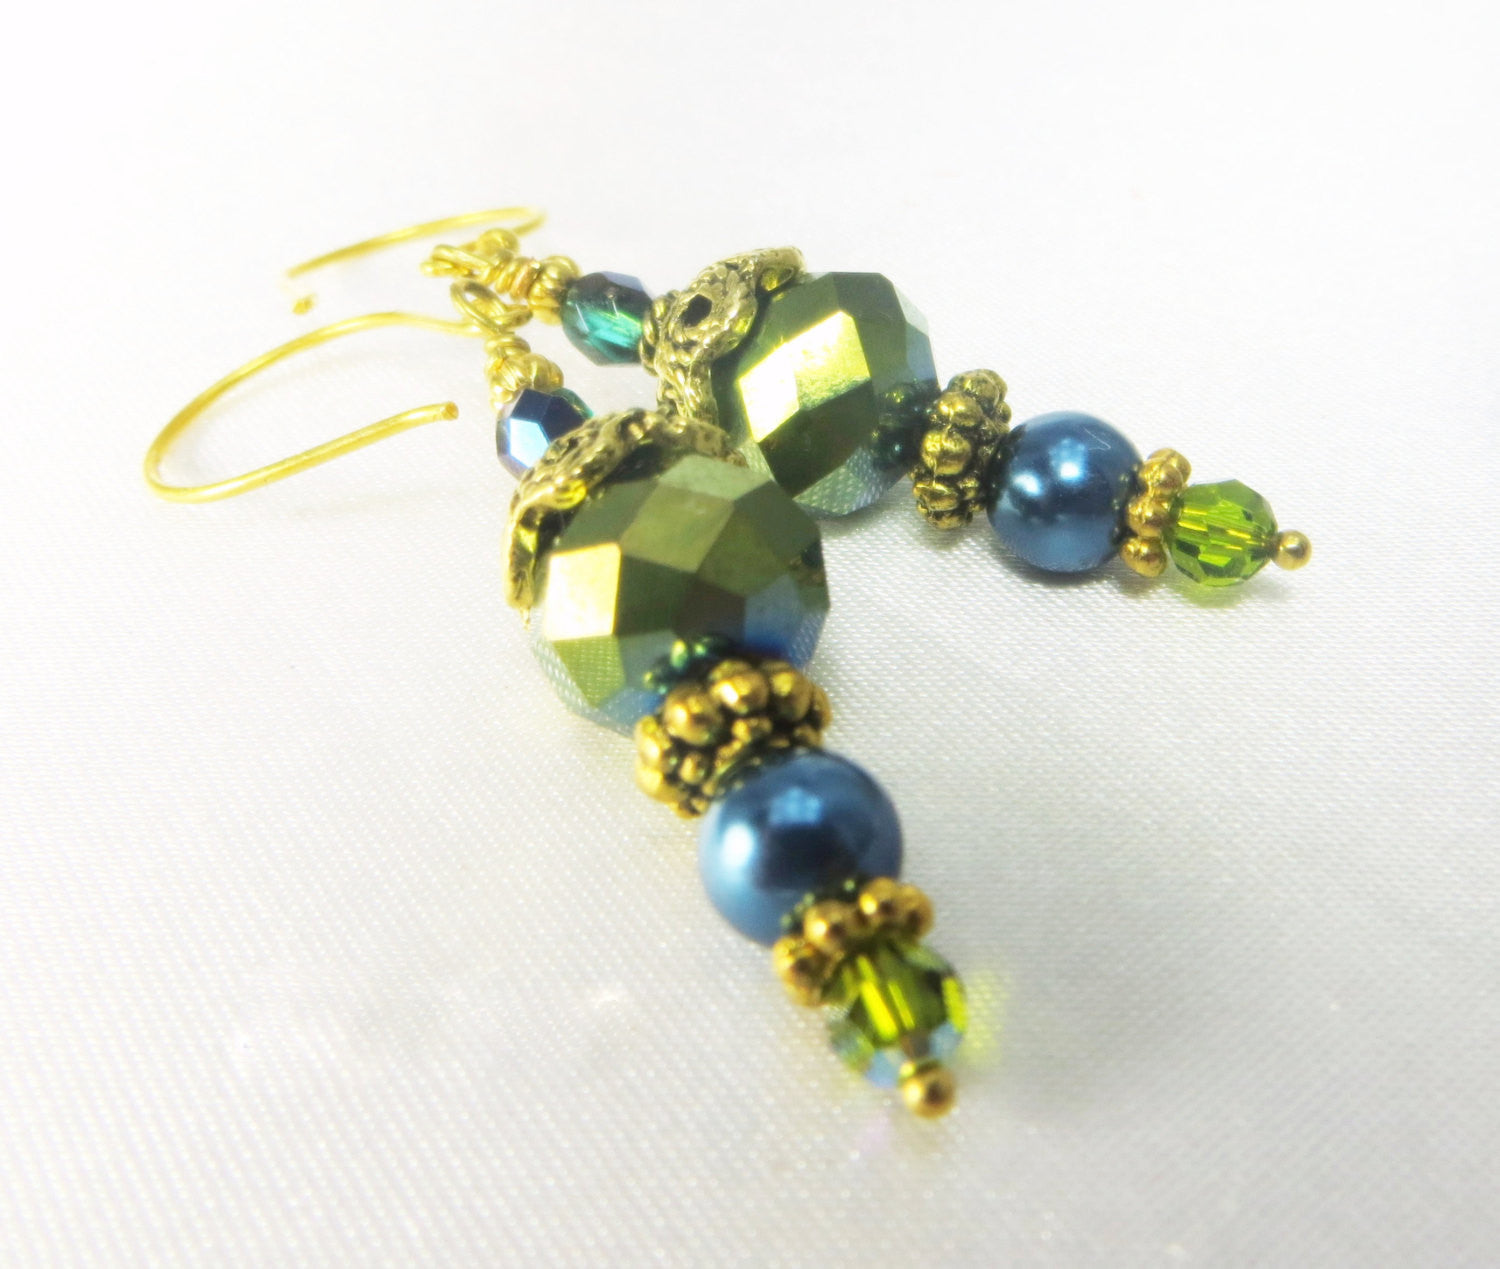 Teal and Green Freshwater Pearl and Swarovski earrings on 14k gold fill wires - Odyssey Creations